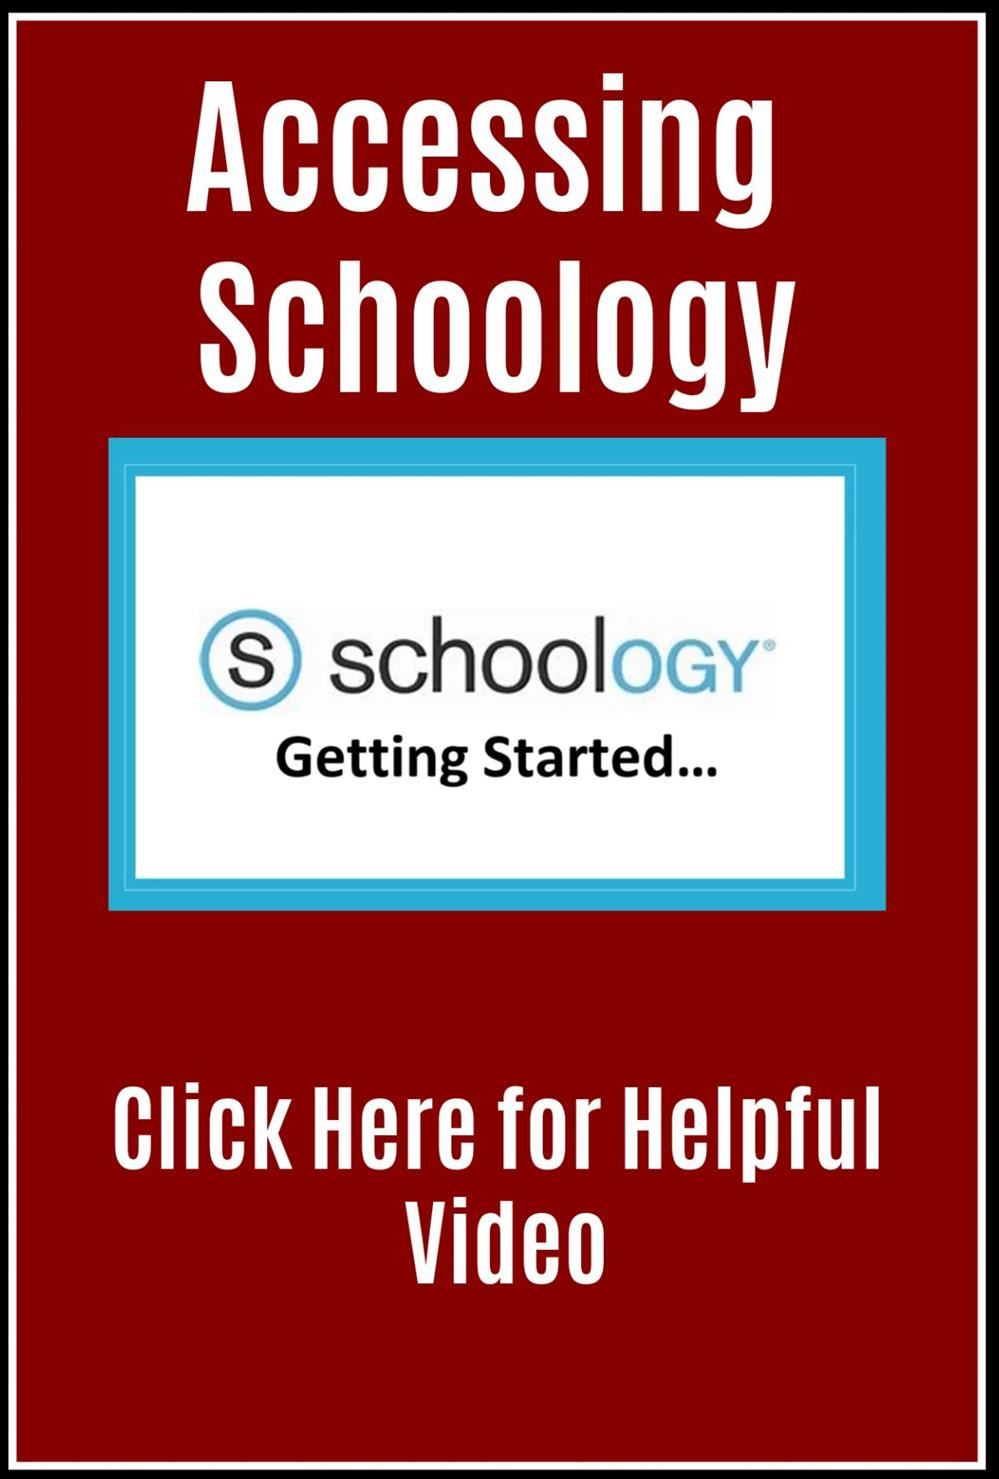 Accessing Schoology